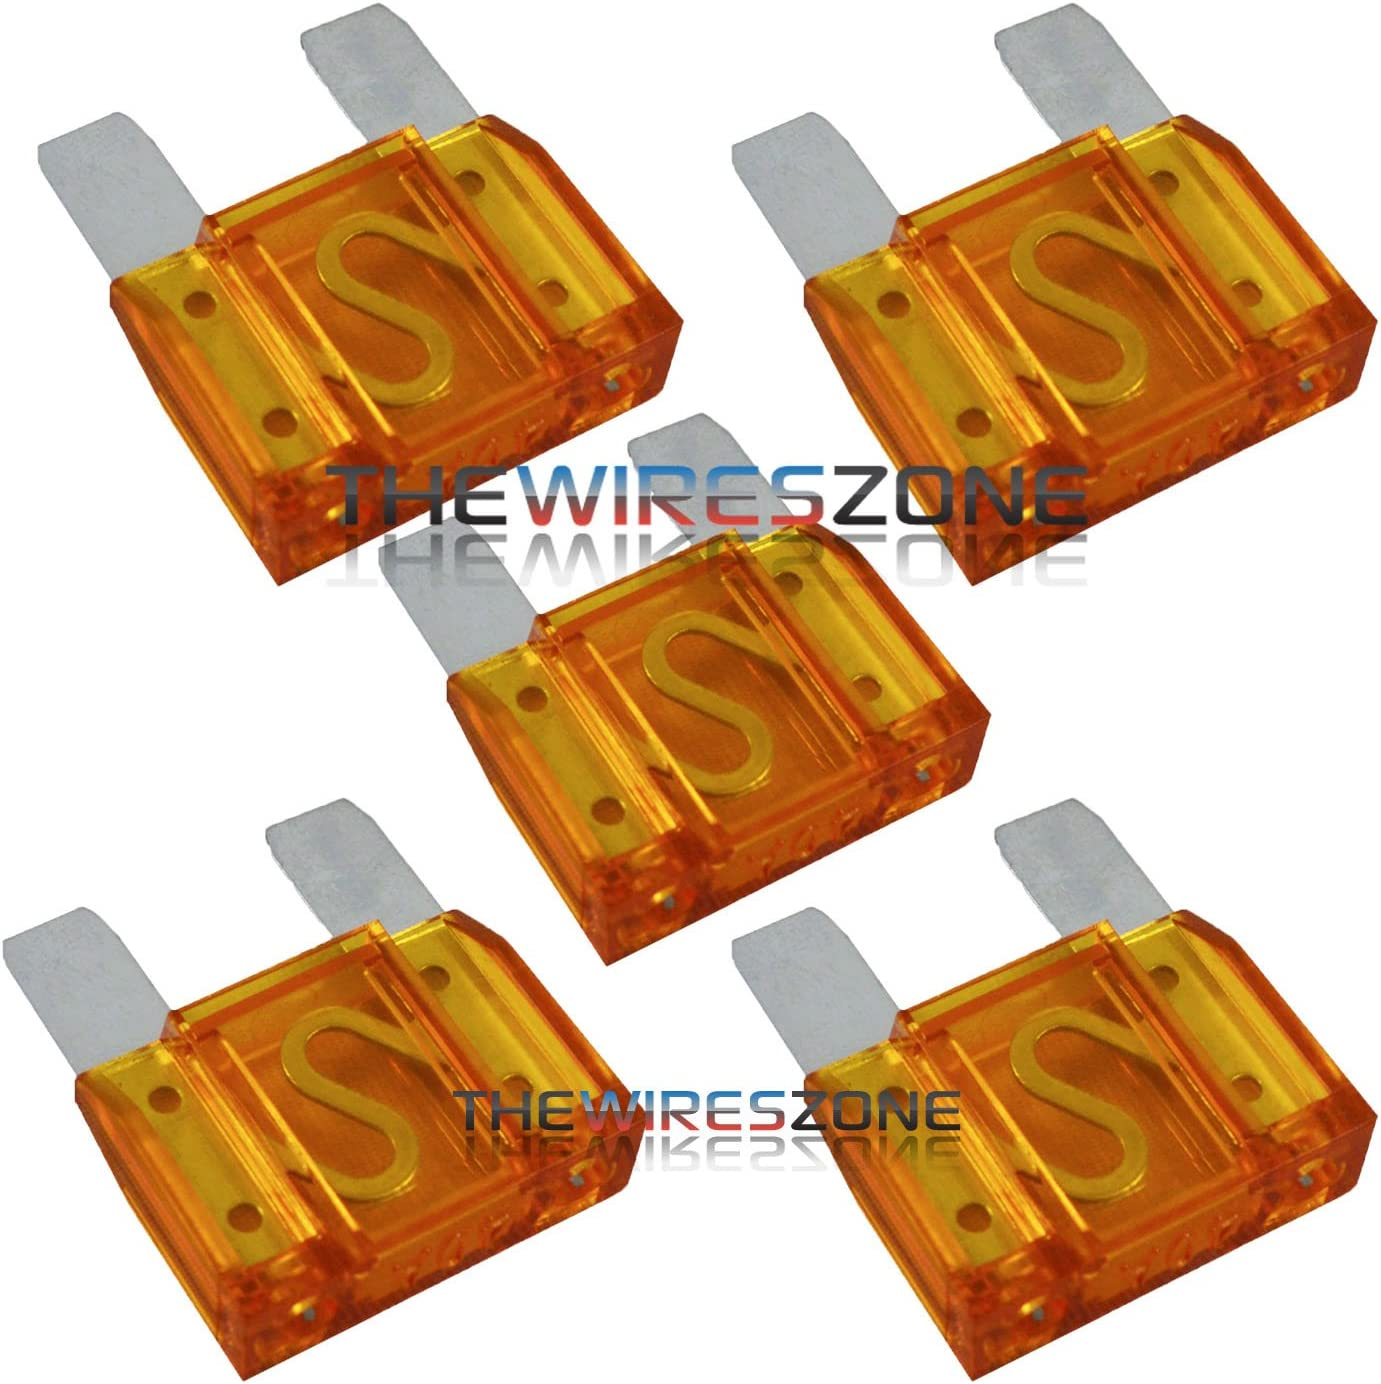 6 Pack of 100 Amp Large Blade Style Audio Maxi Fuse for Car//RV//Boat